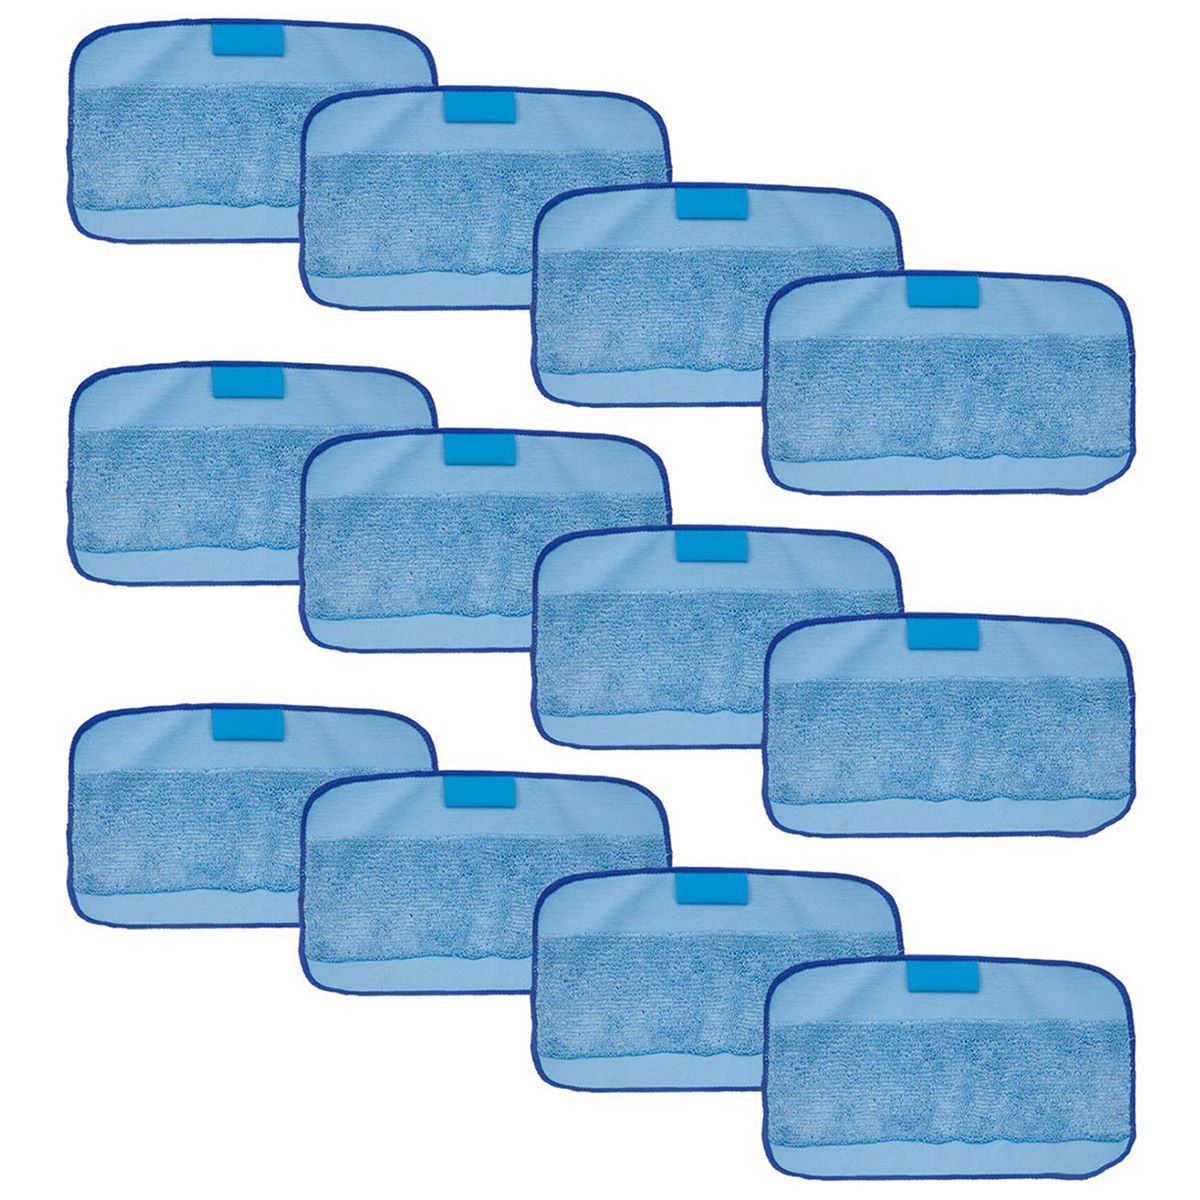 Hot 12 Packs Wet Cloths for Braava   Replacement Washable Pro Mopping Cloths for iRobot Braava 380t 320 Mint 4200 5200|Vacuum Cleaner Parts| |  - title=